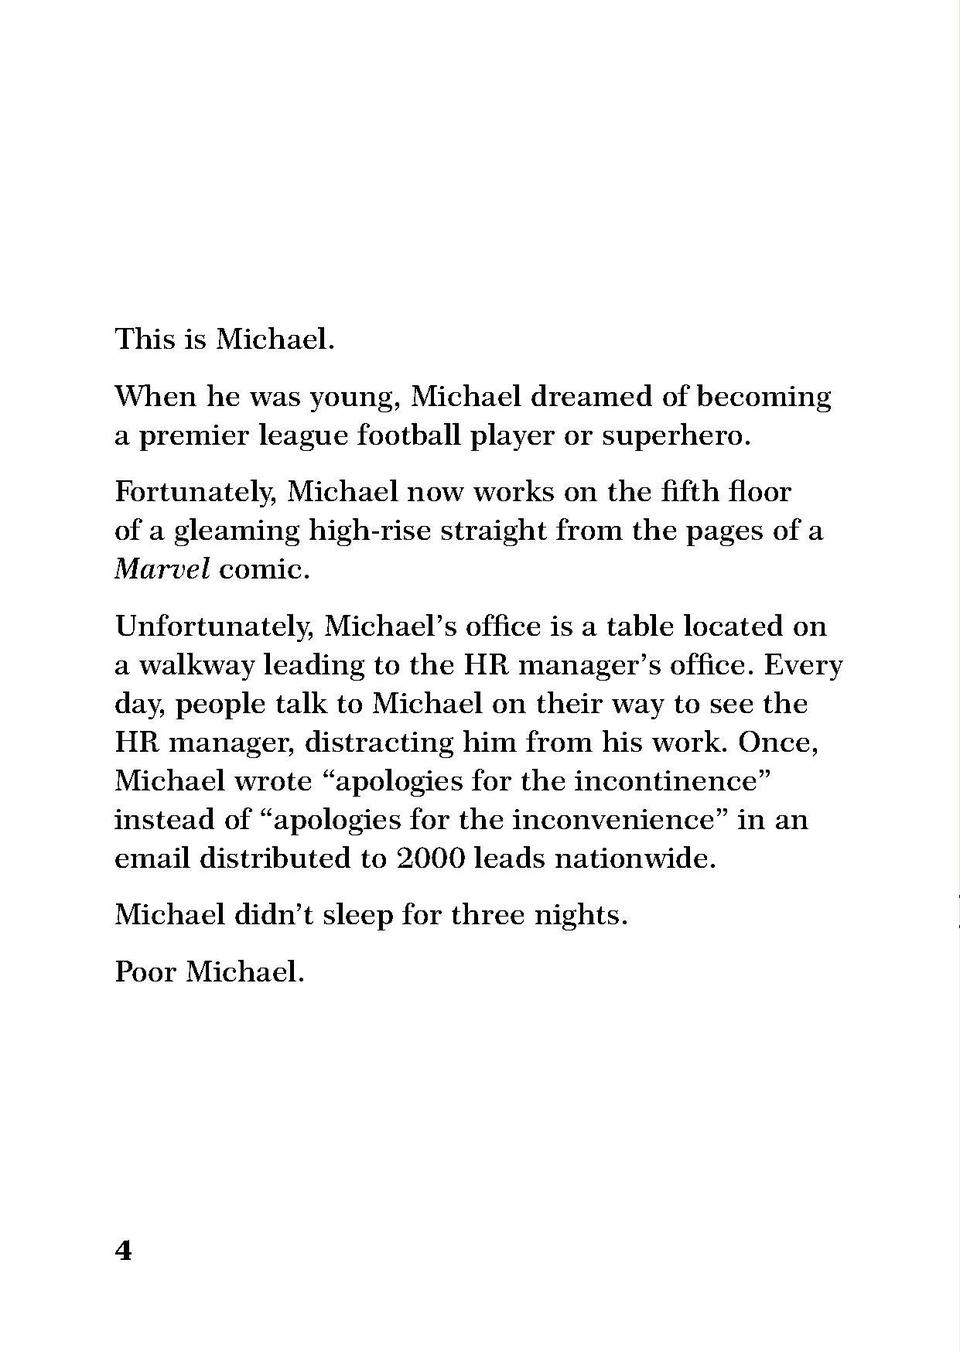 This is Michael. When he was young, Michael dreamed of becoming a premier league football player or superhero. Fortunately...